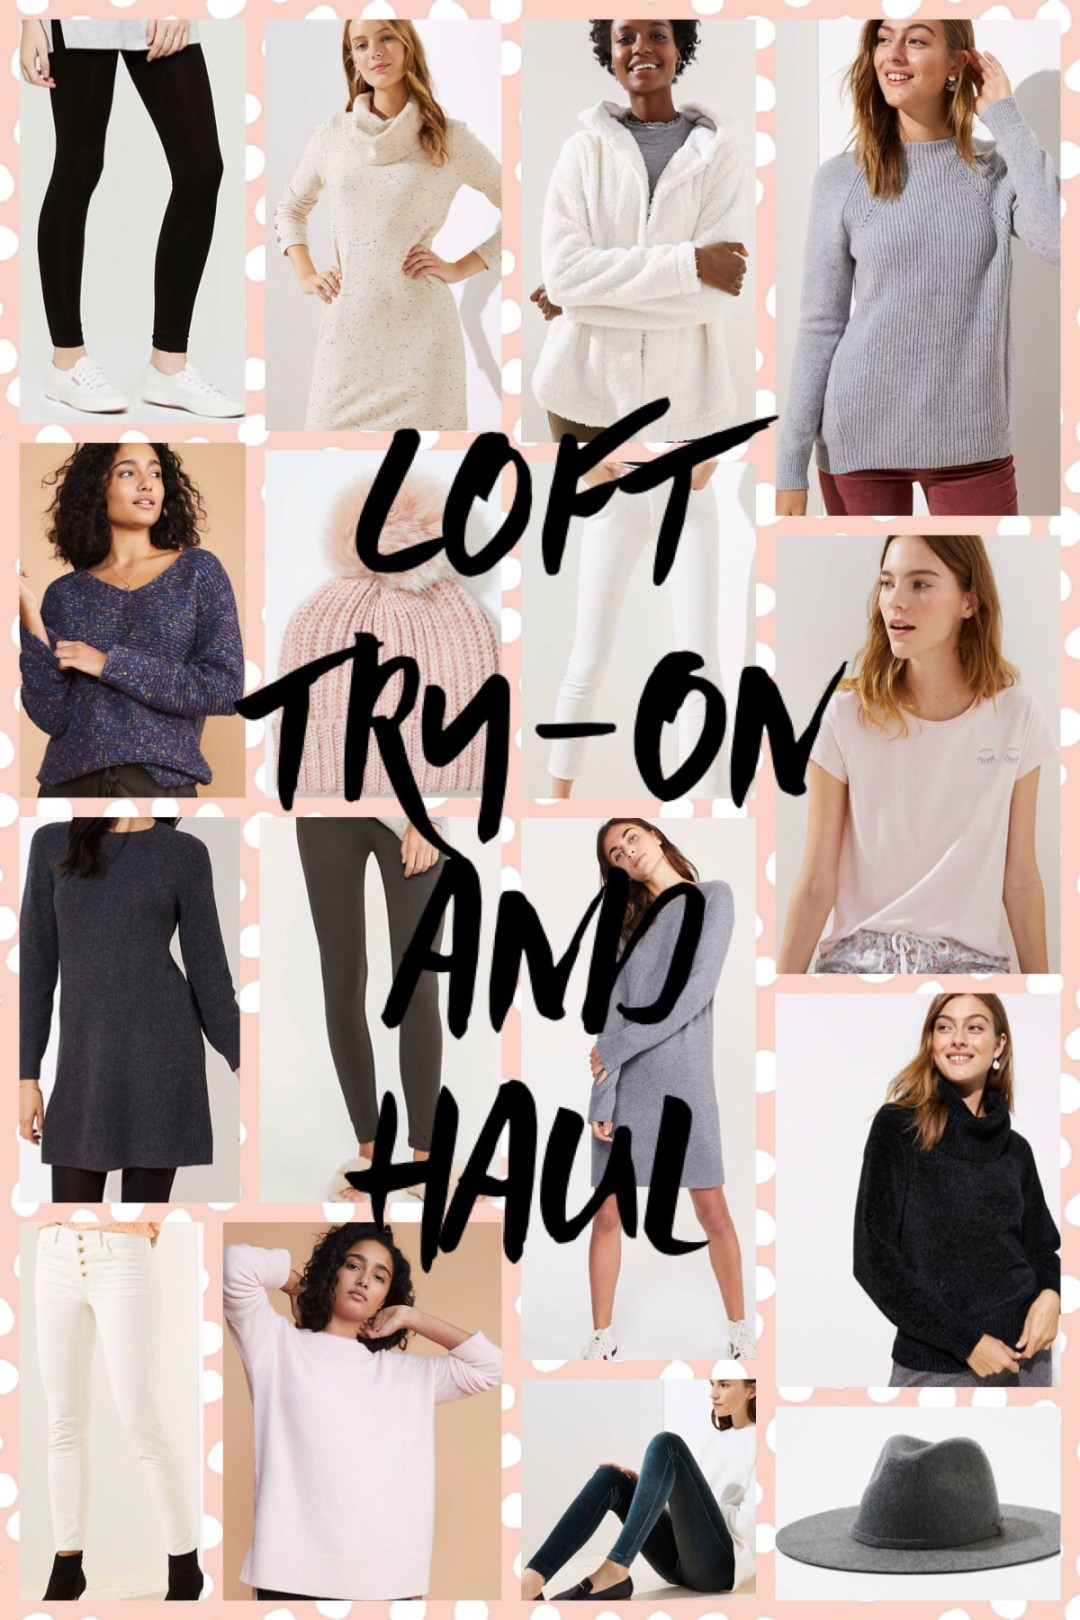 Loft try-on and haul winter 2018, winter outfit ideas